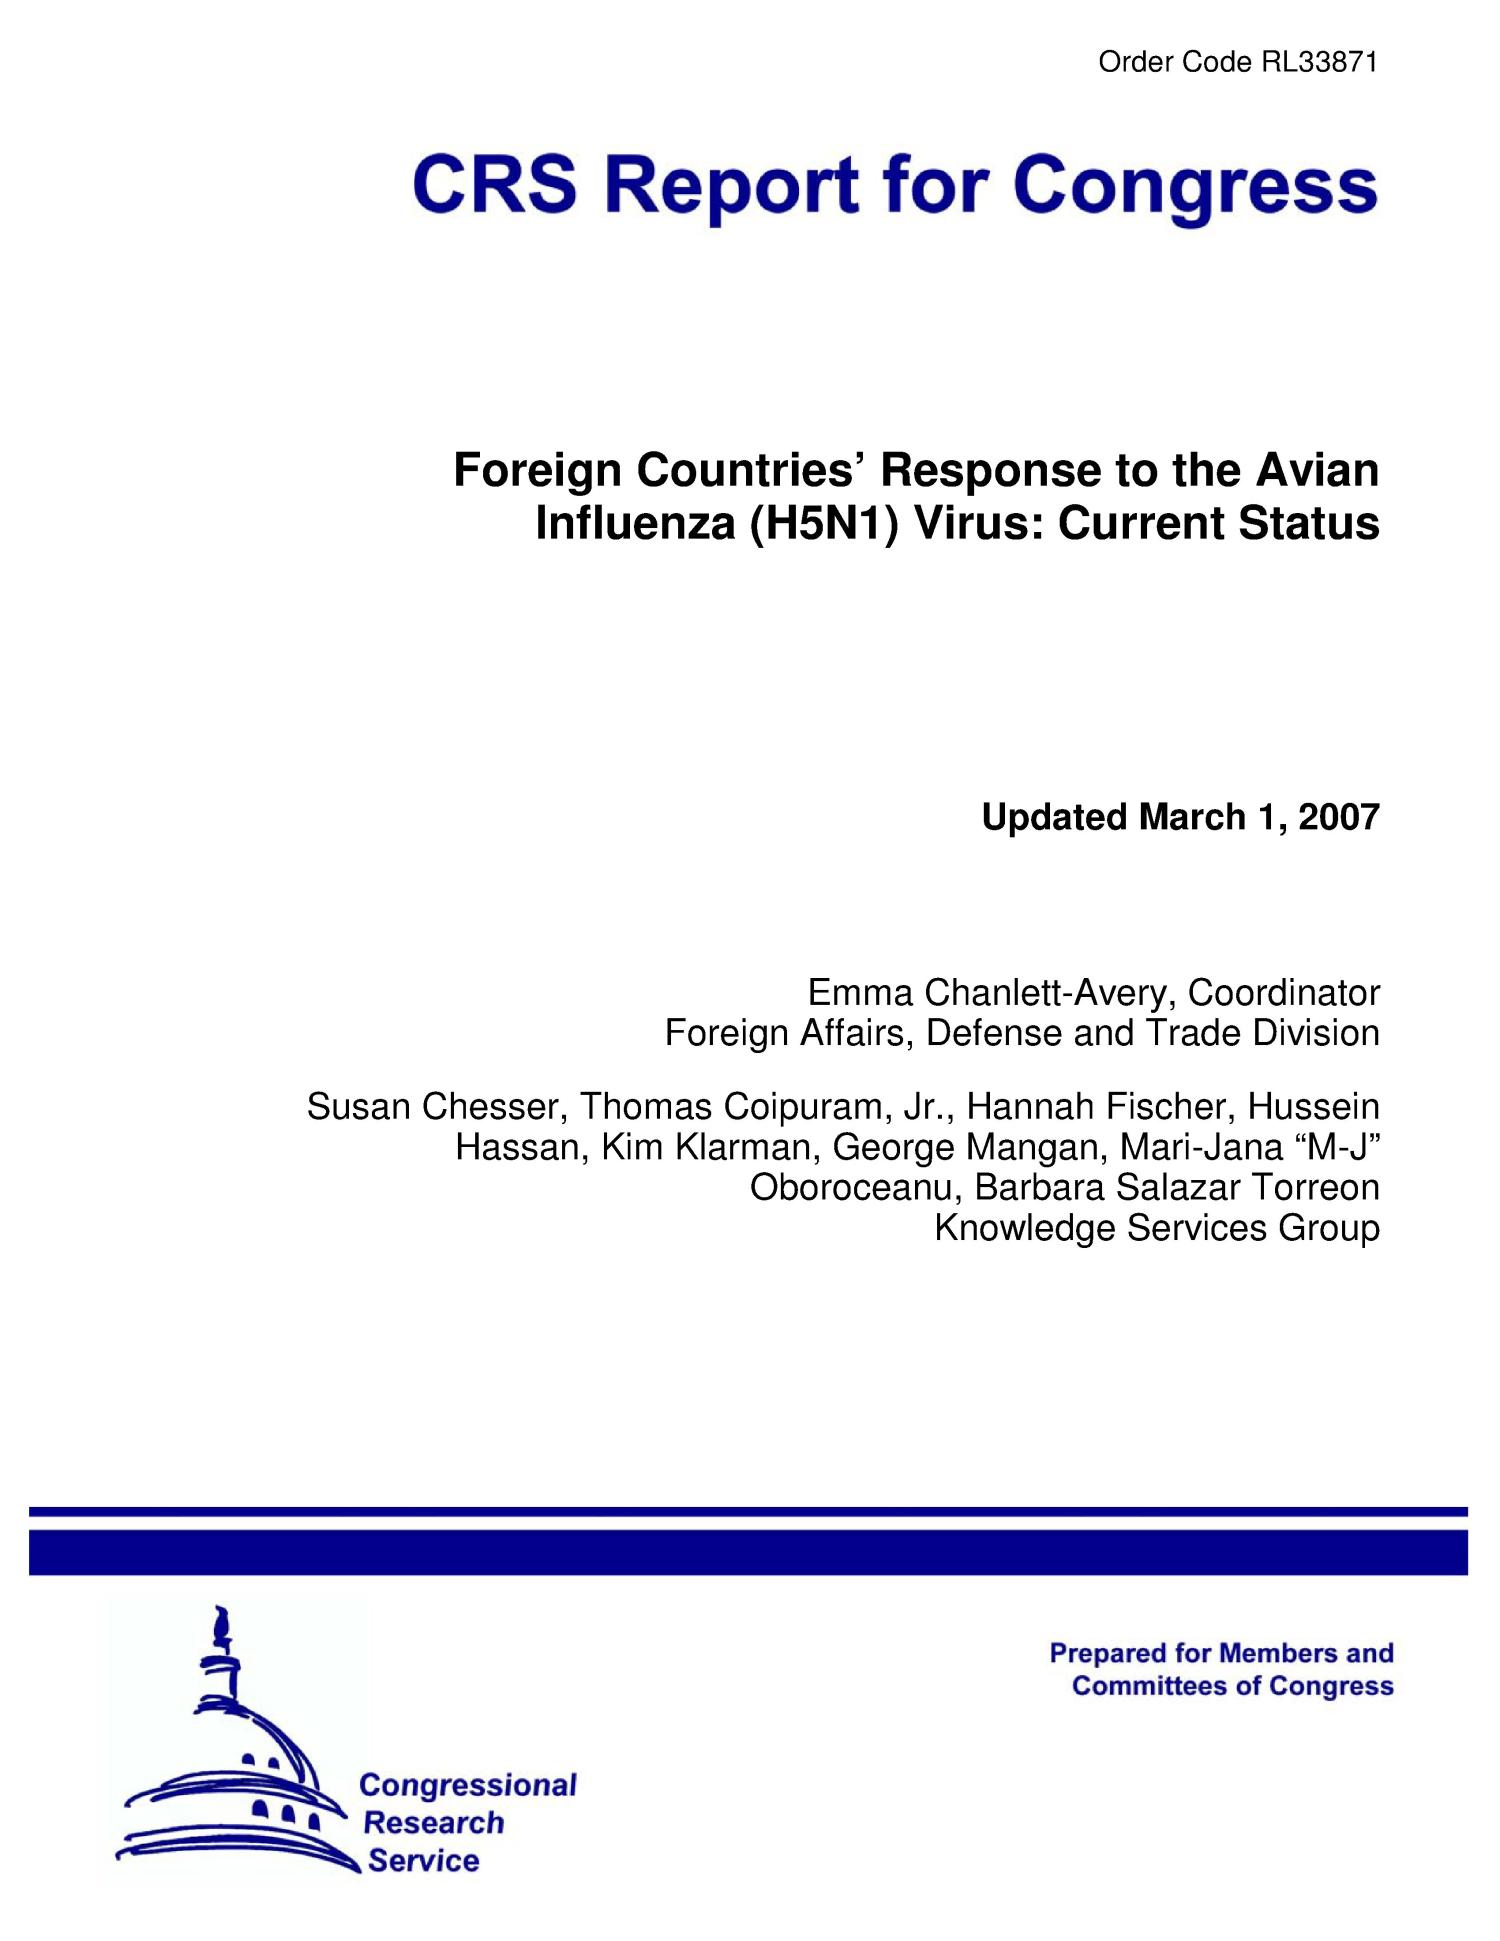 Foreign Countries' Response to the Avian Influenza (H5N1) Virus: Current Status                                                                                                      [Sequence #]: 1 of 15